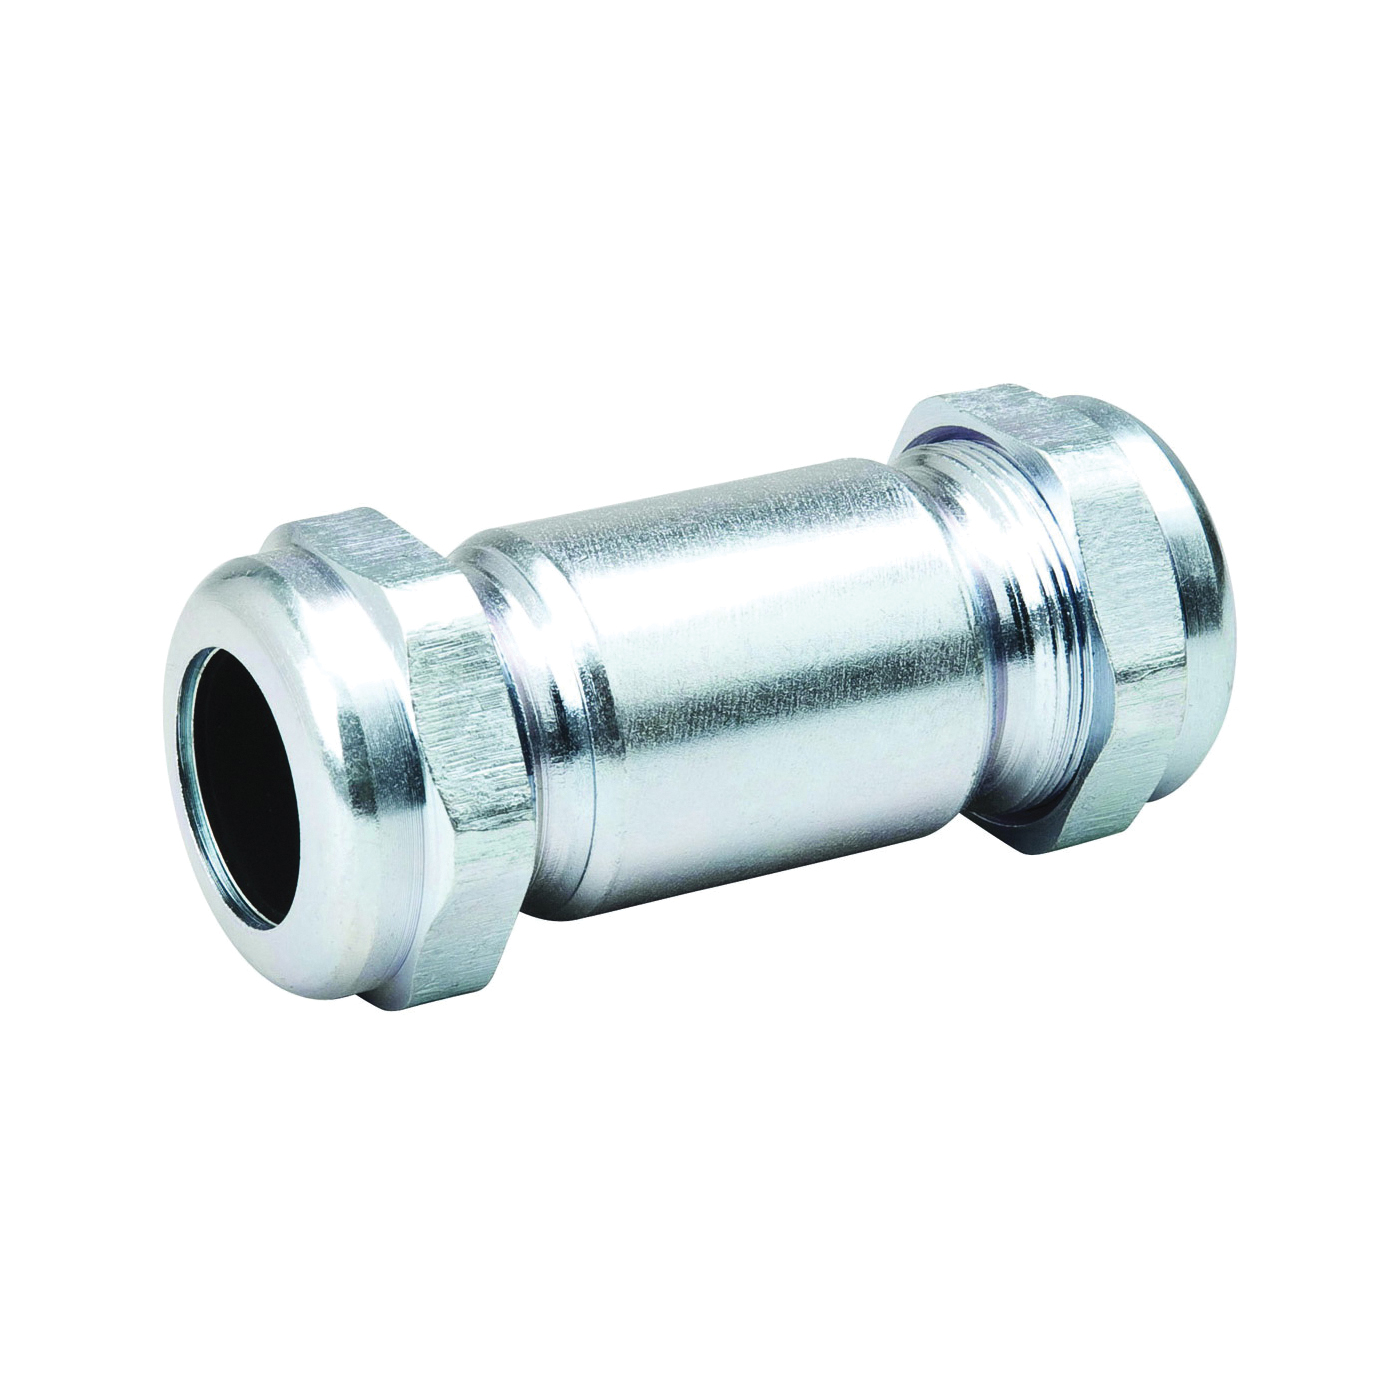 Picture of B & K 160-004HC Compression Coupling, 3/4 in, IPS, 125 psi Pressure